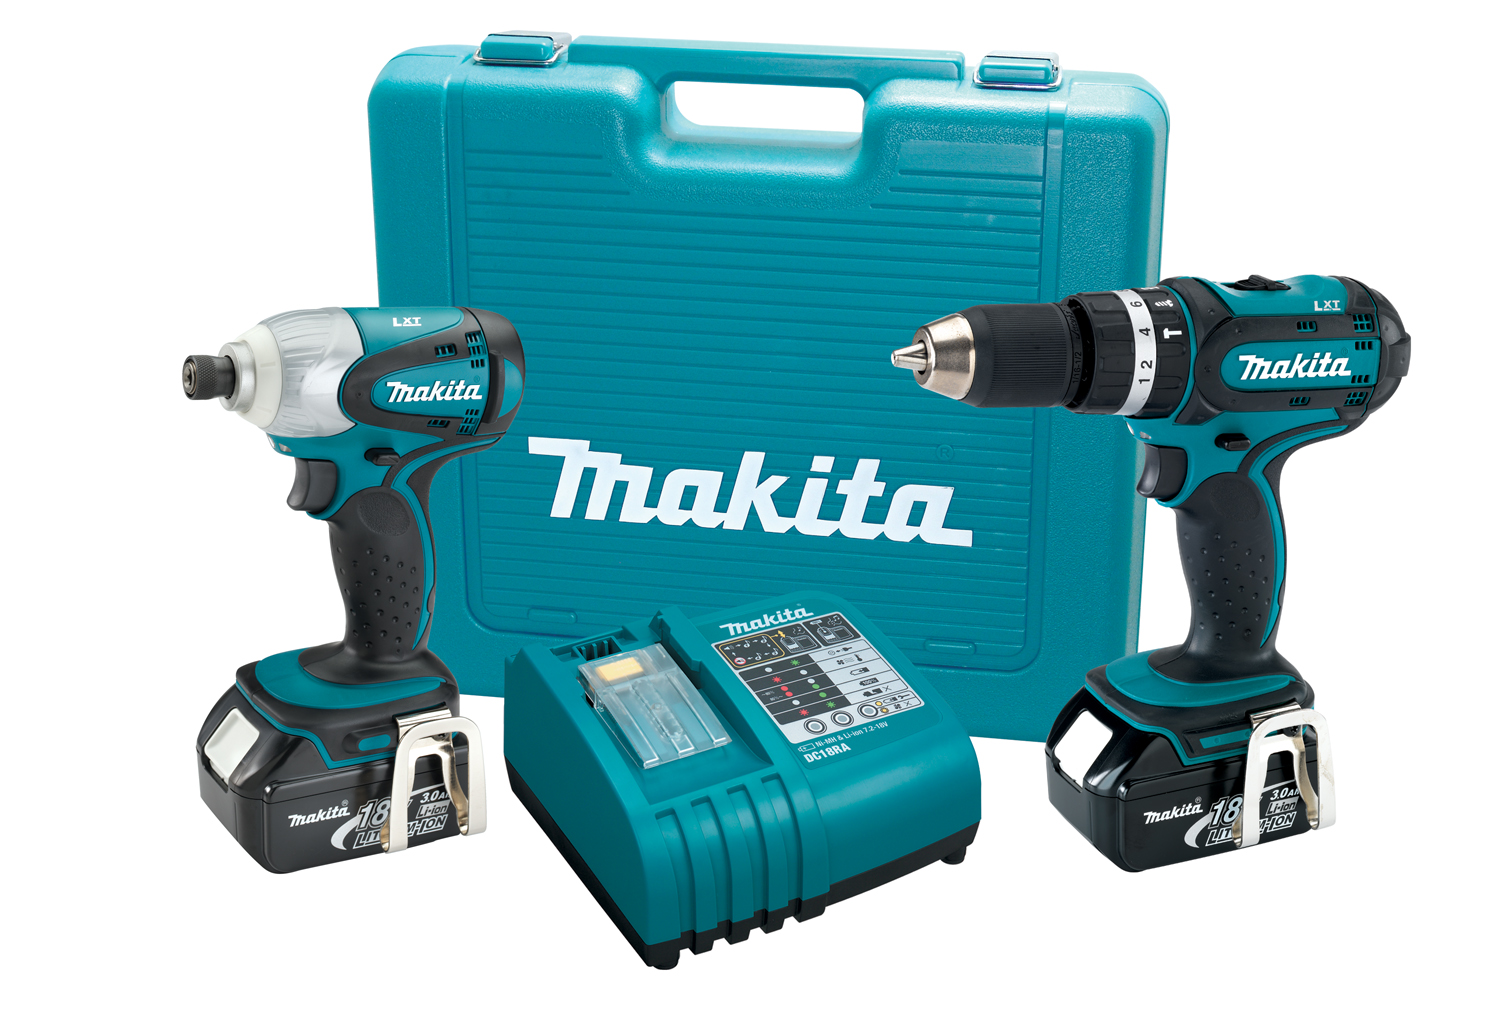 Makita Accuboor Set Makita Lxt211 18 Volt Cordless Lxt Combo Kit Review